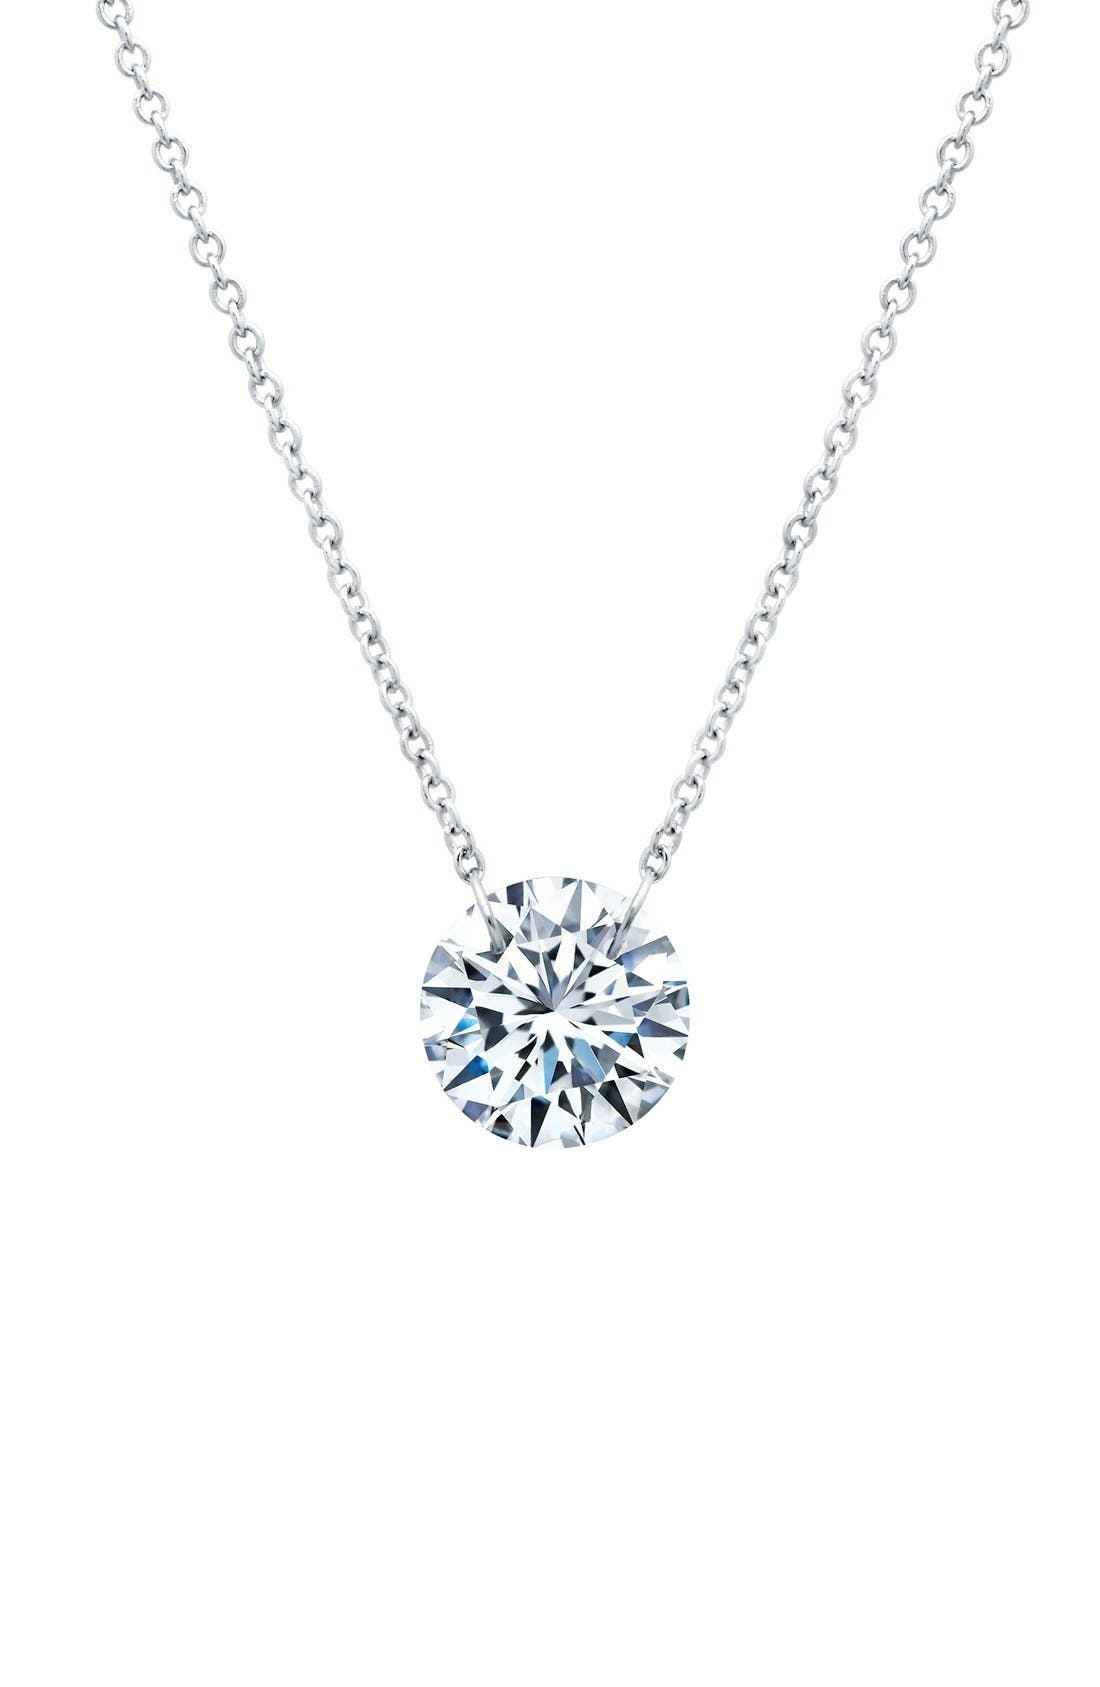 In Motion Frameless Pendant Necklace,                         Main,                         color, Silver